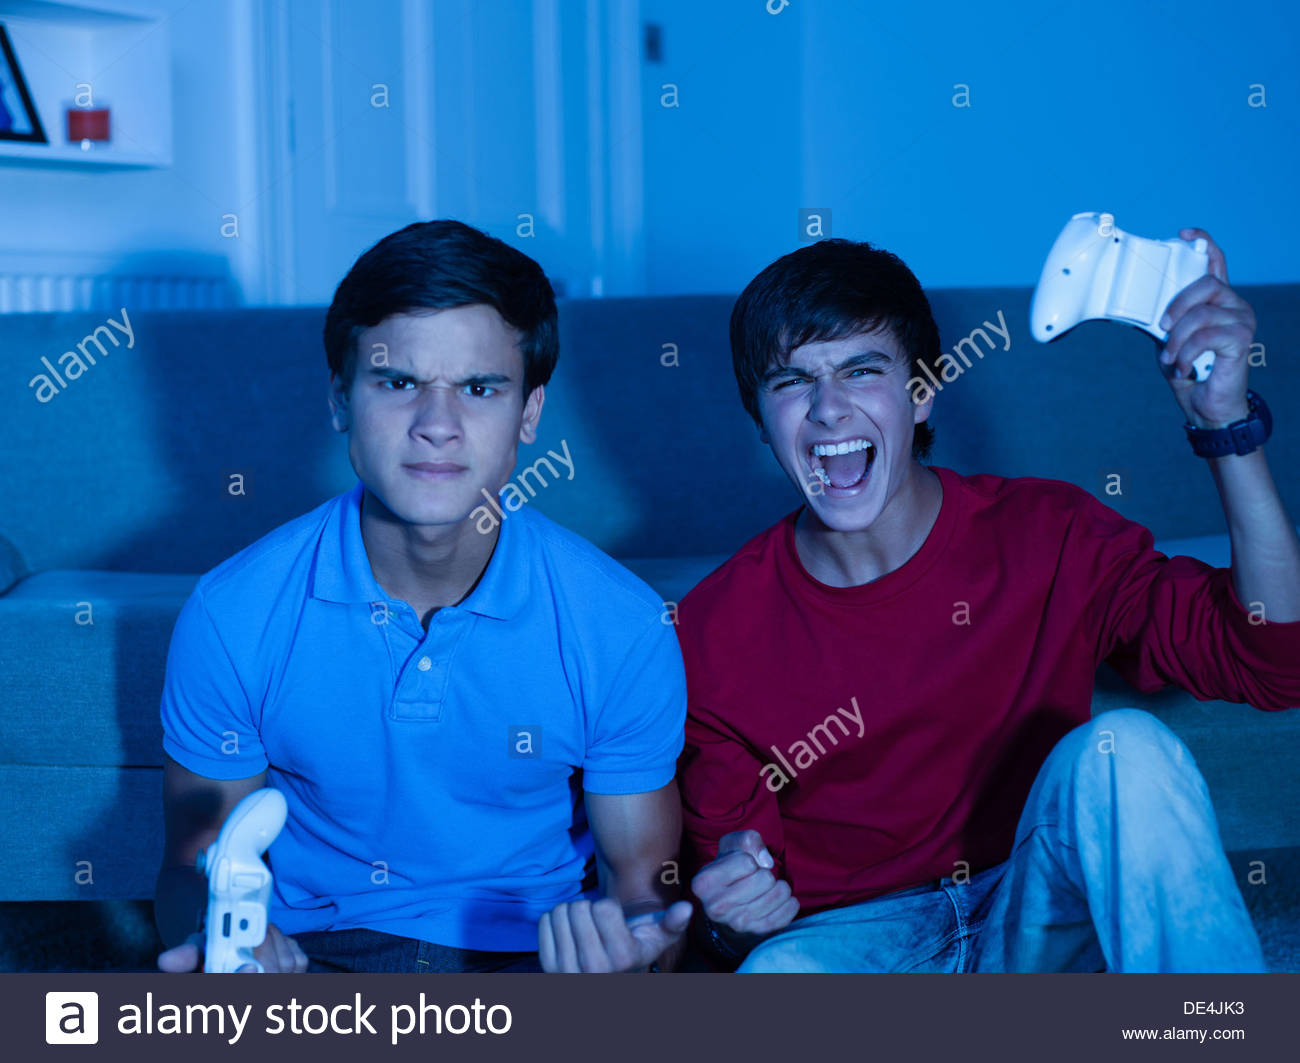 Smiling teenage boys playing video game Photo Stock